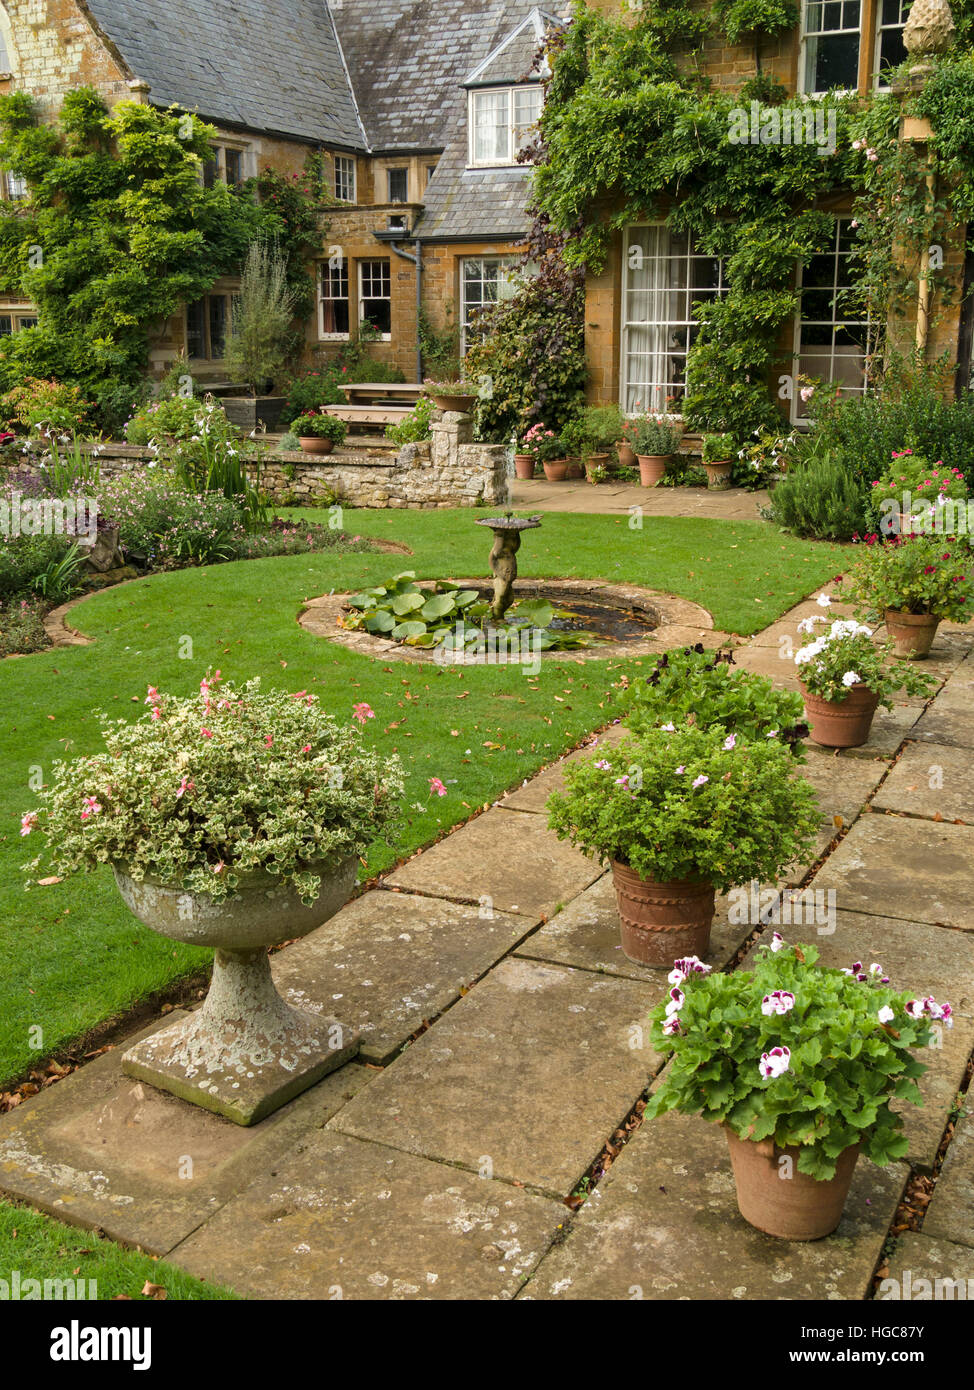 Patio Pots And Planters In Gardens Of Coton Manor House, Coton,  Northamptonshire, England, UK.